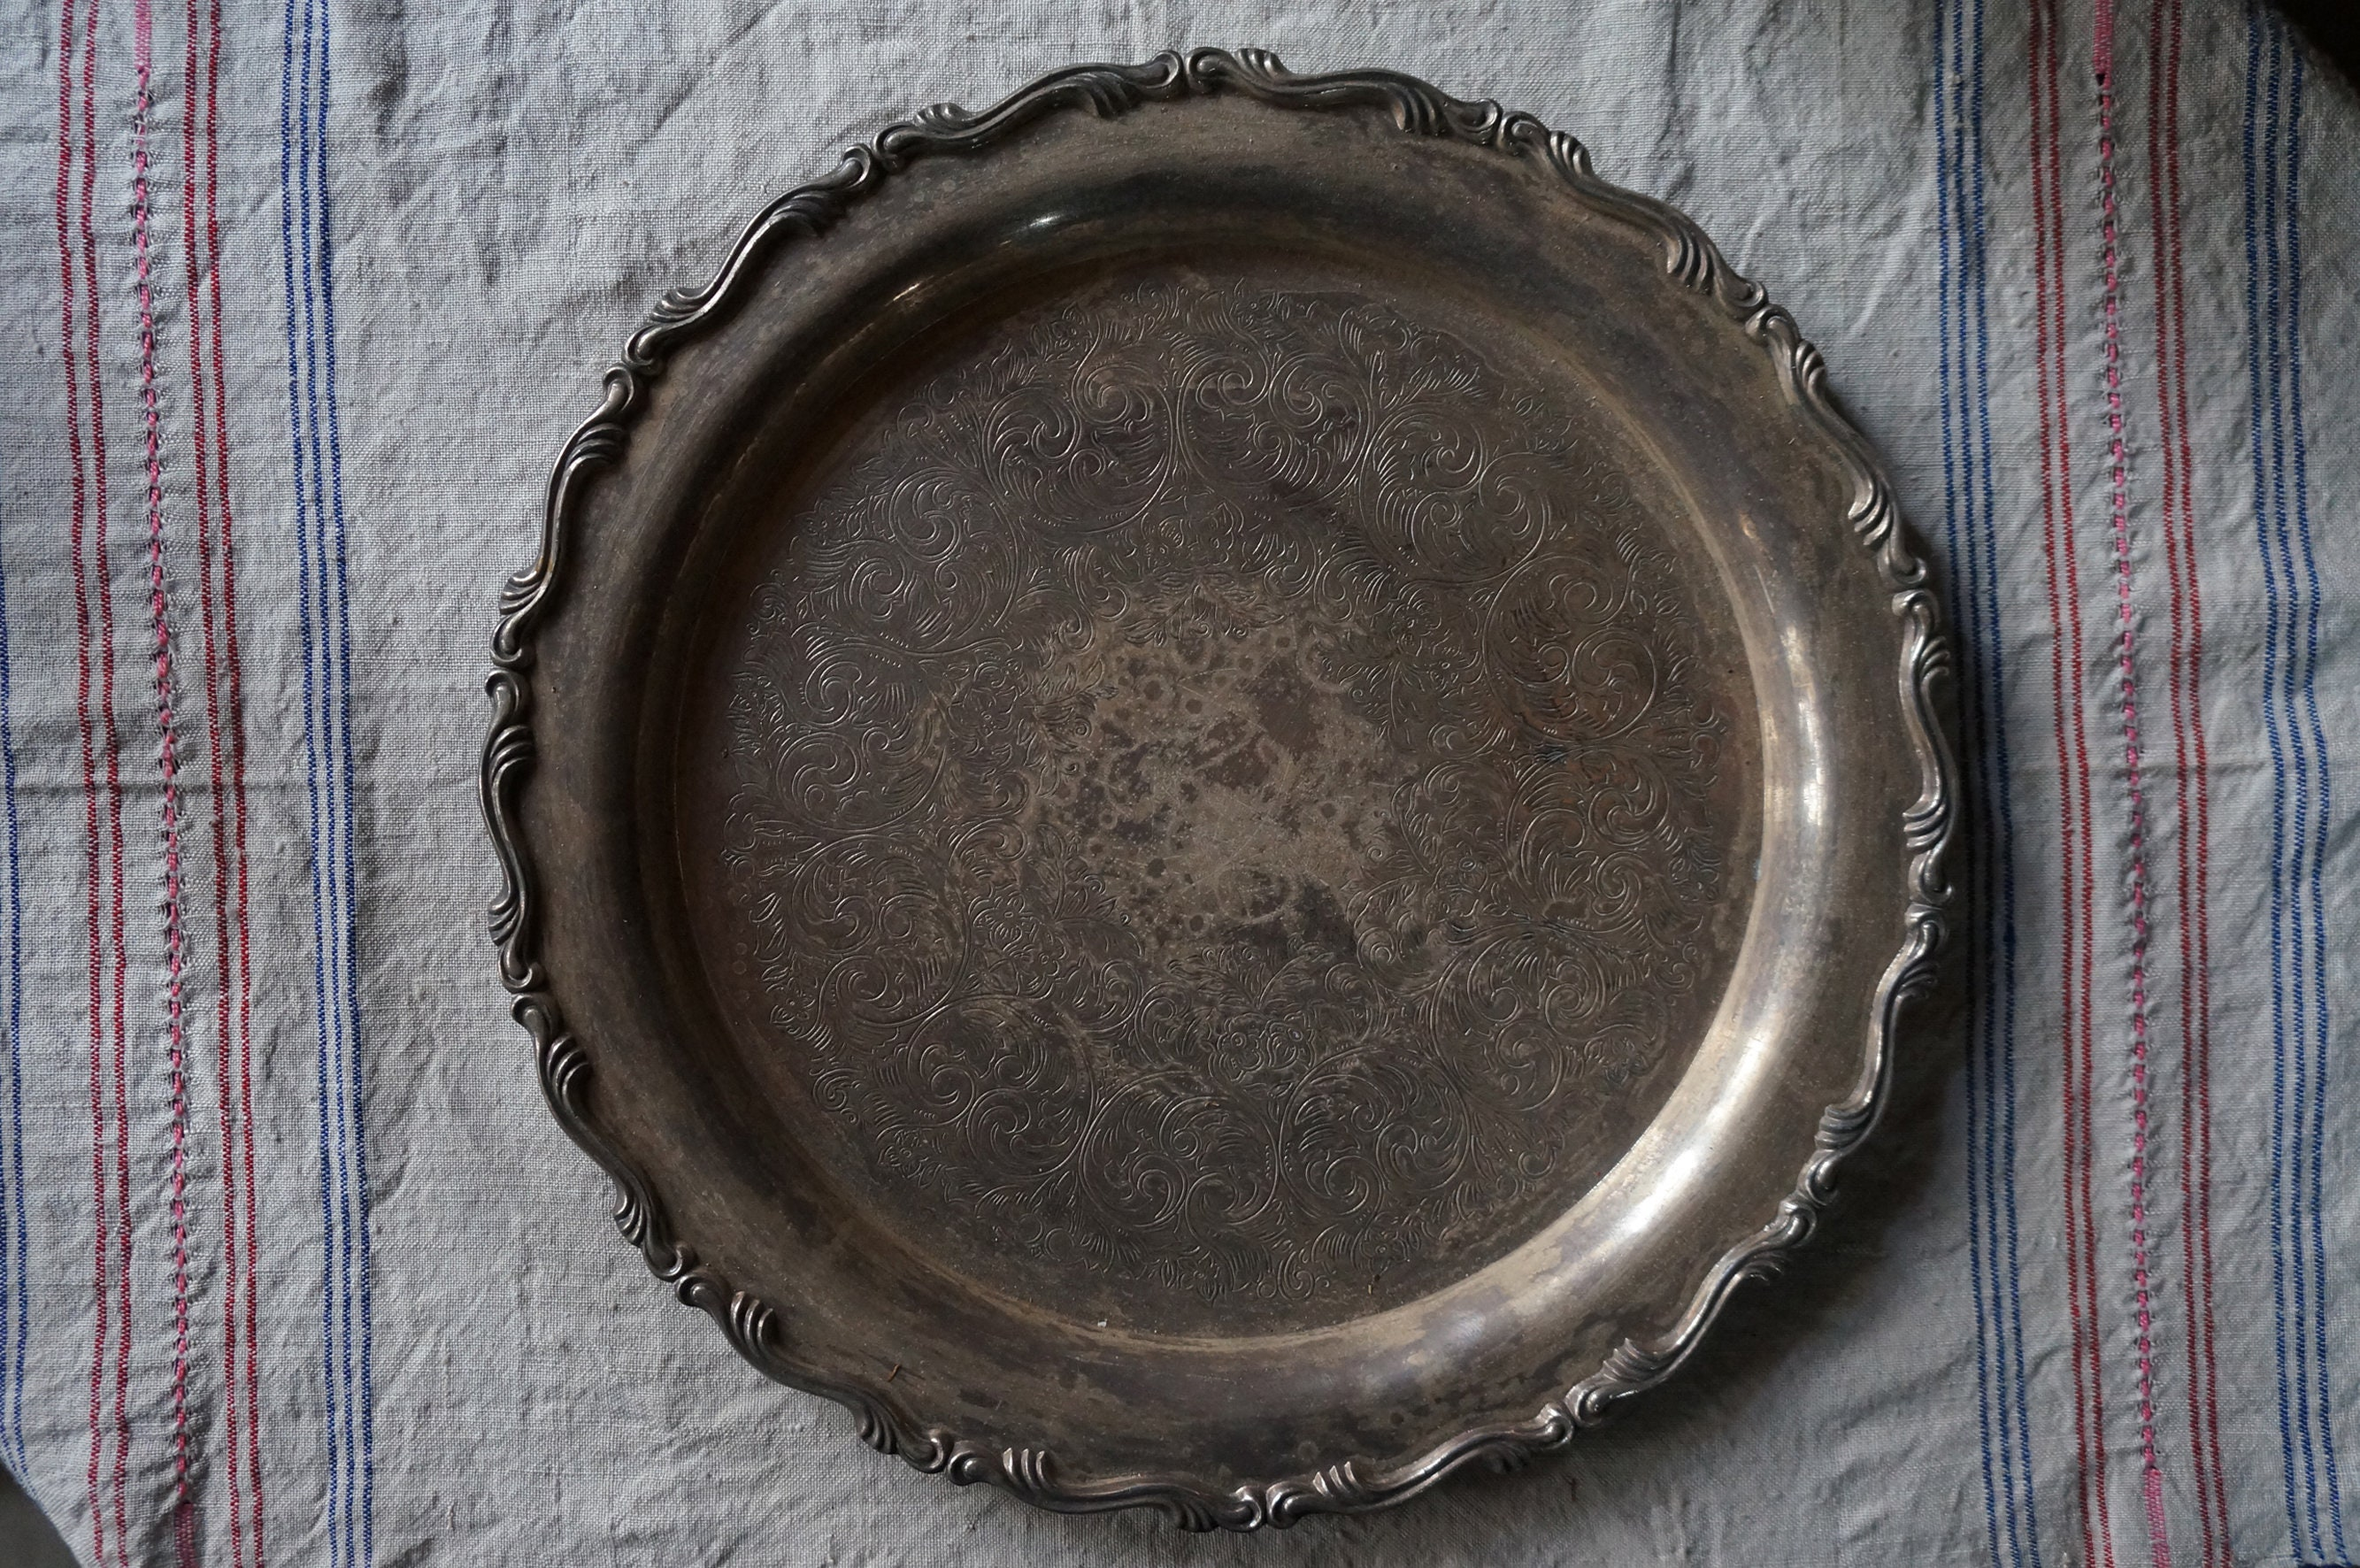 Silver Plated Serving Tray Tray Vintage Silver Plated Serving Tray Footed Tray Silver Plated Antique Tray Floral Carved Decoration